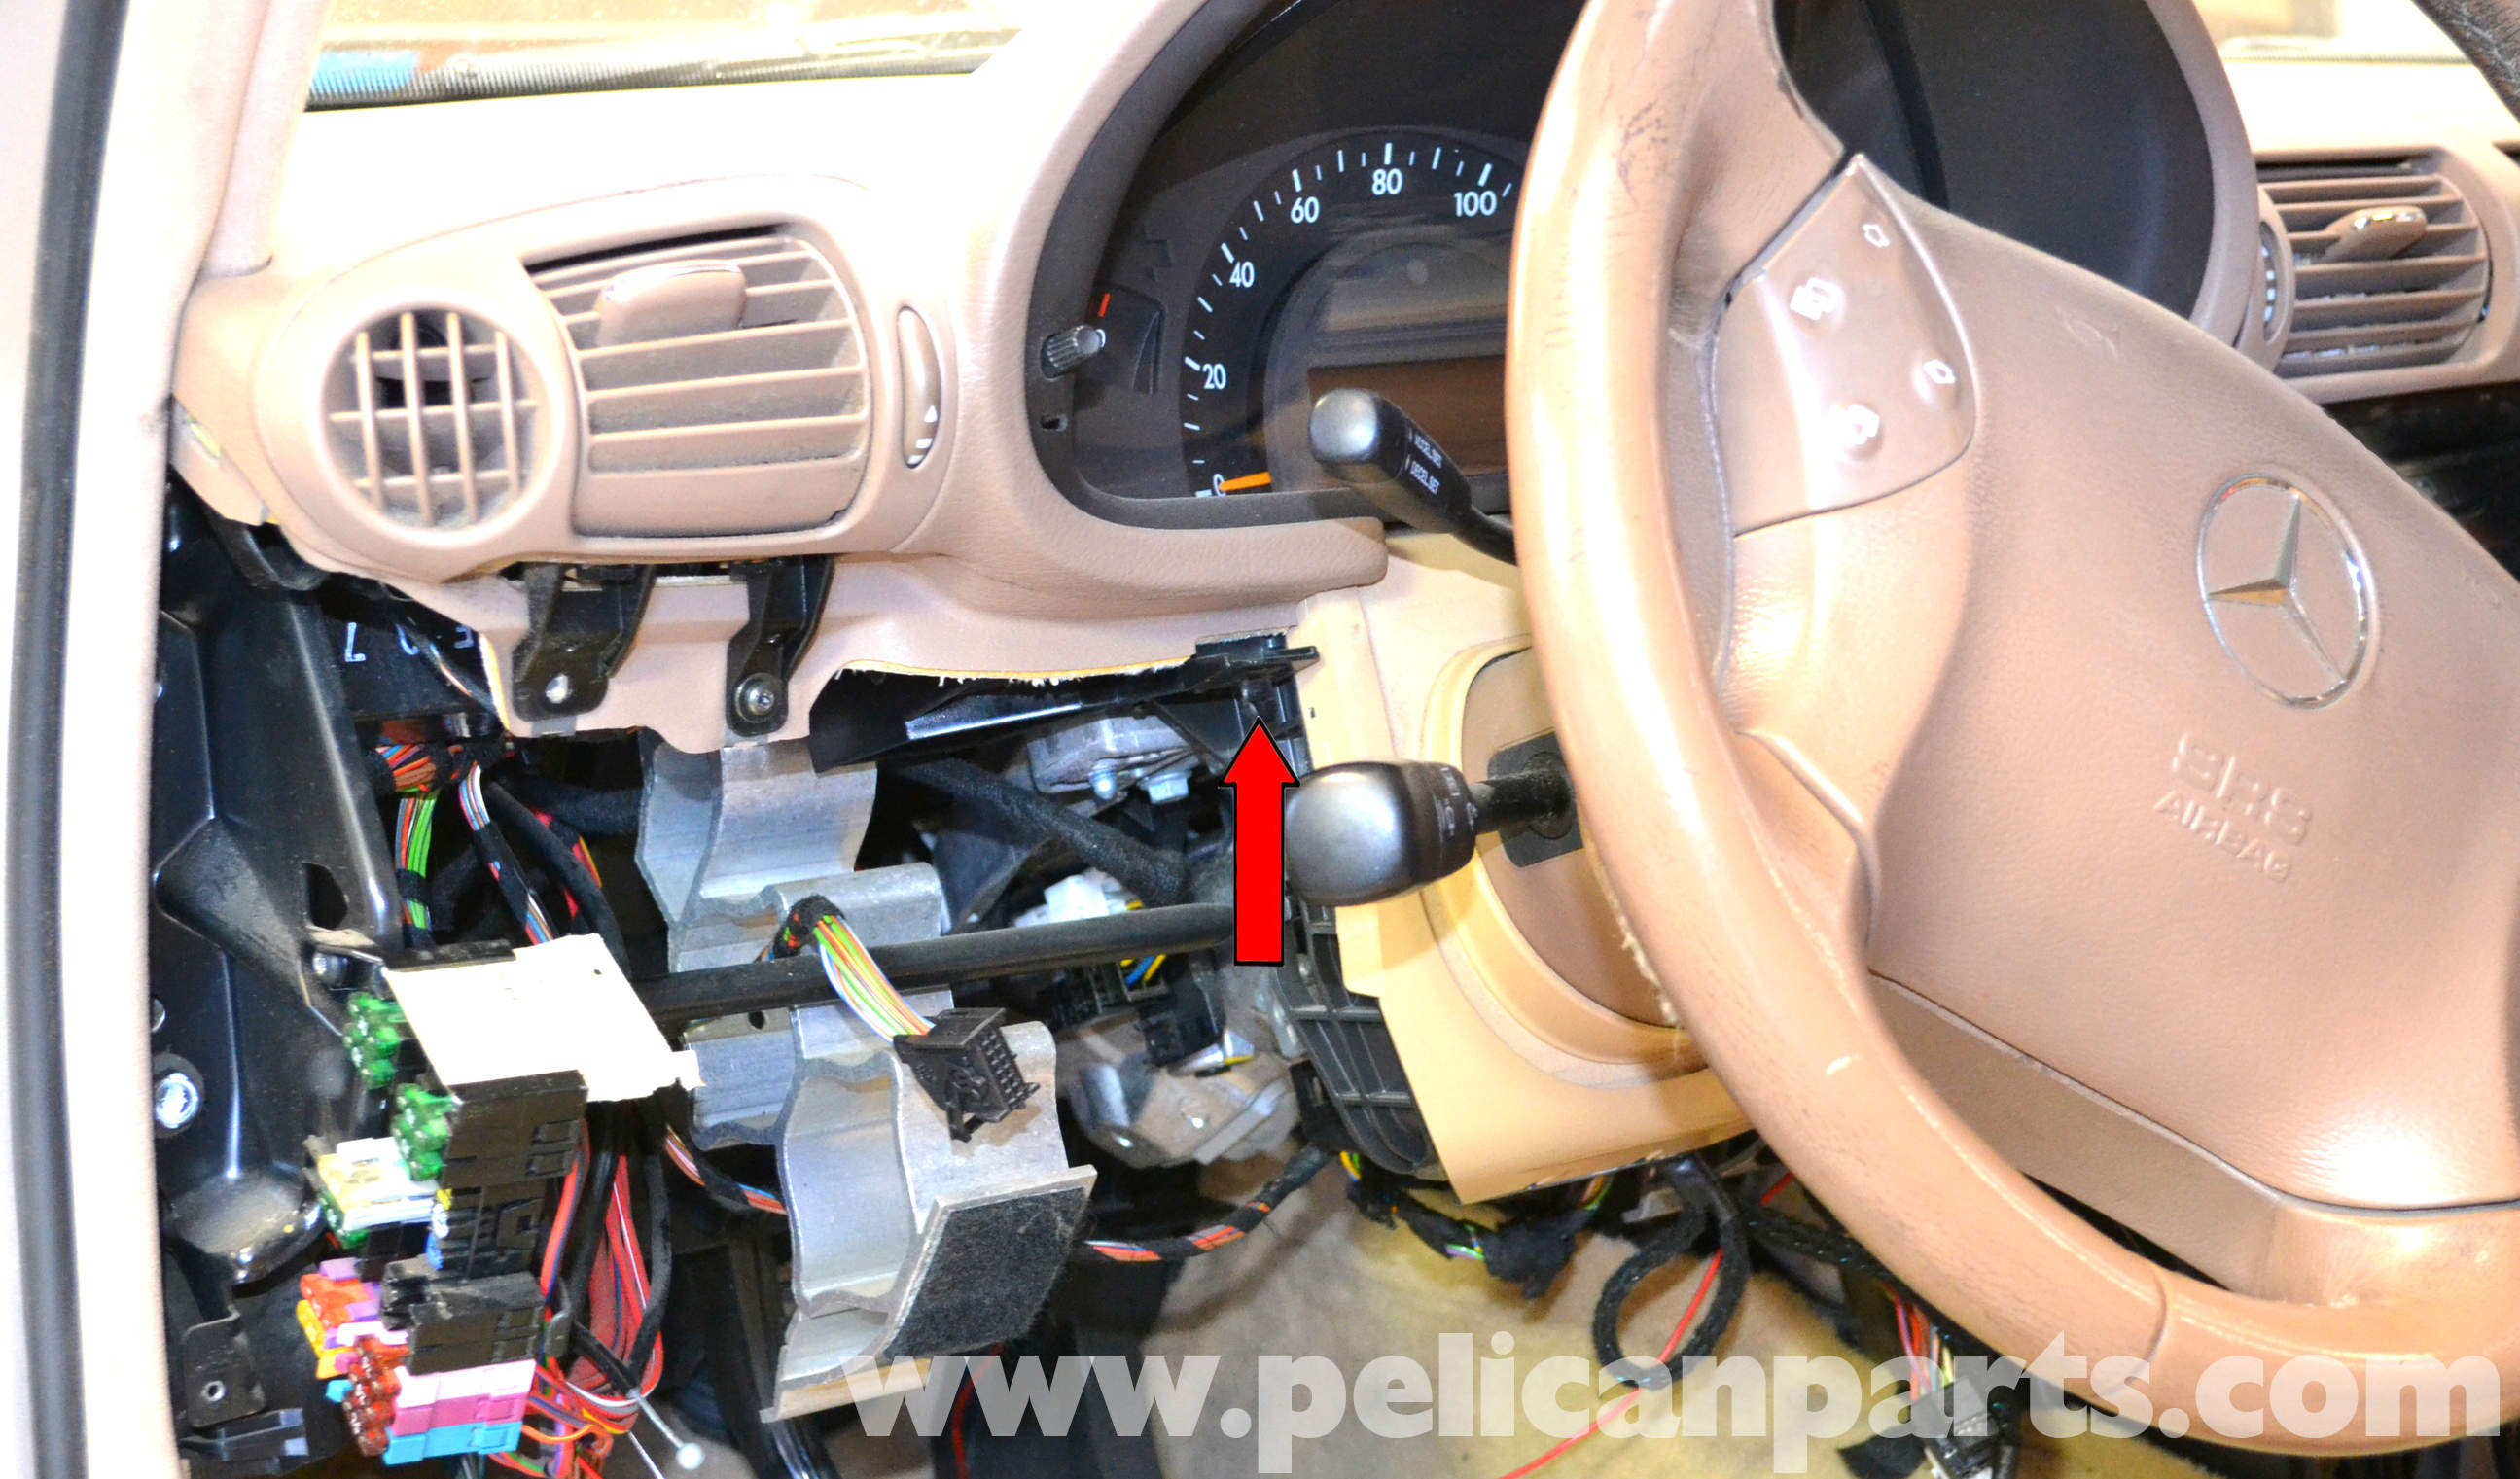 Mercedes Benz W203 Ignition Switch Replacement 2001